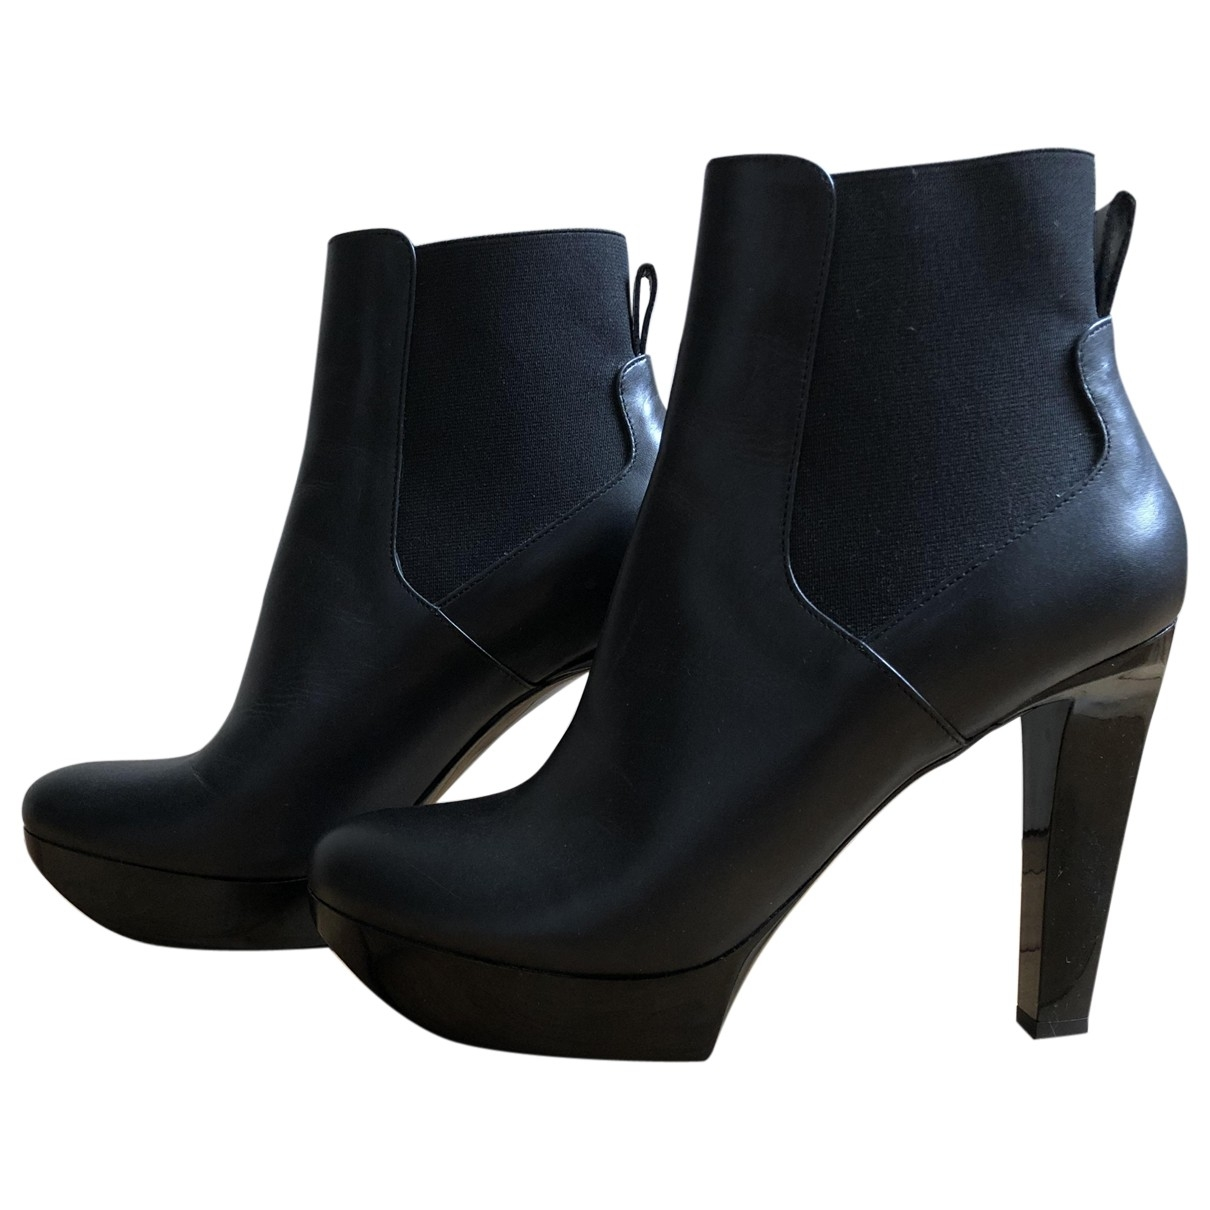 Robert Clergerie \N Black Leather Ankle boots for Women 38.5 EU